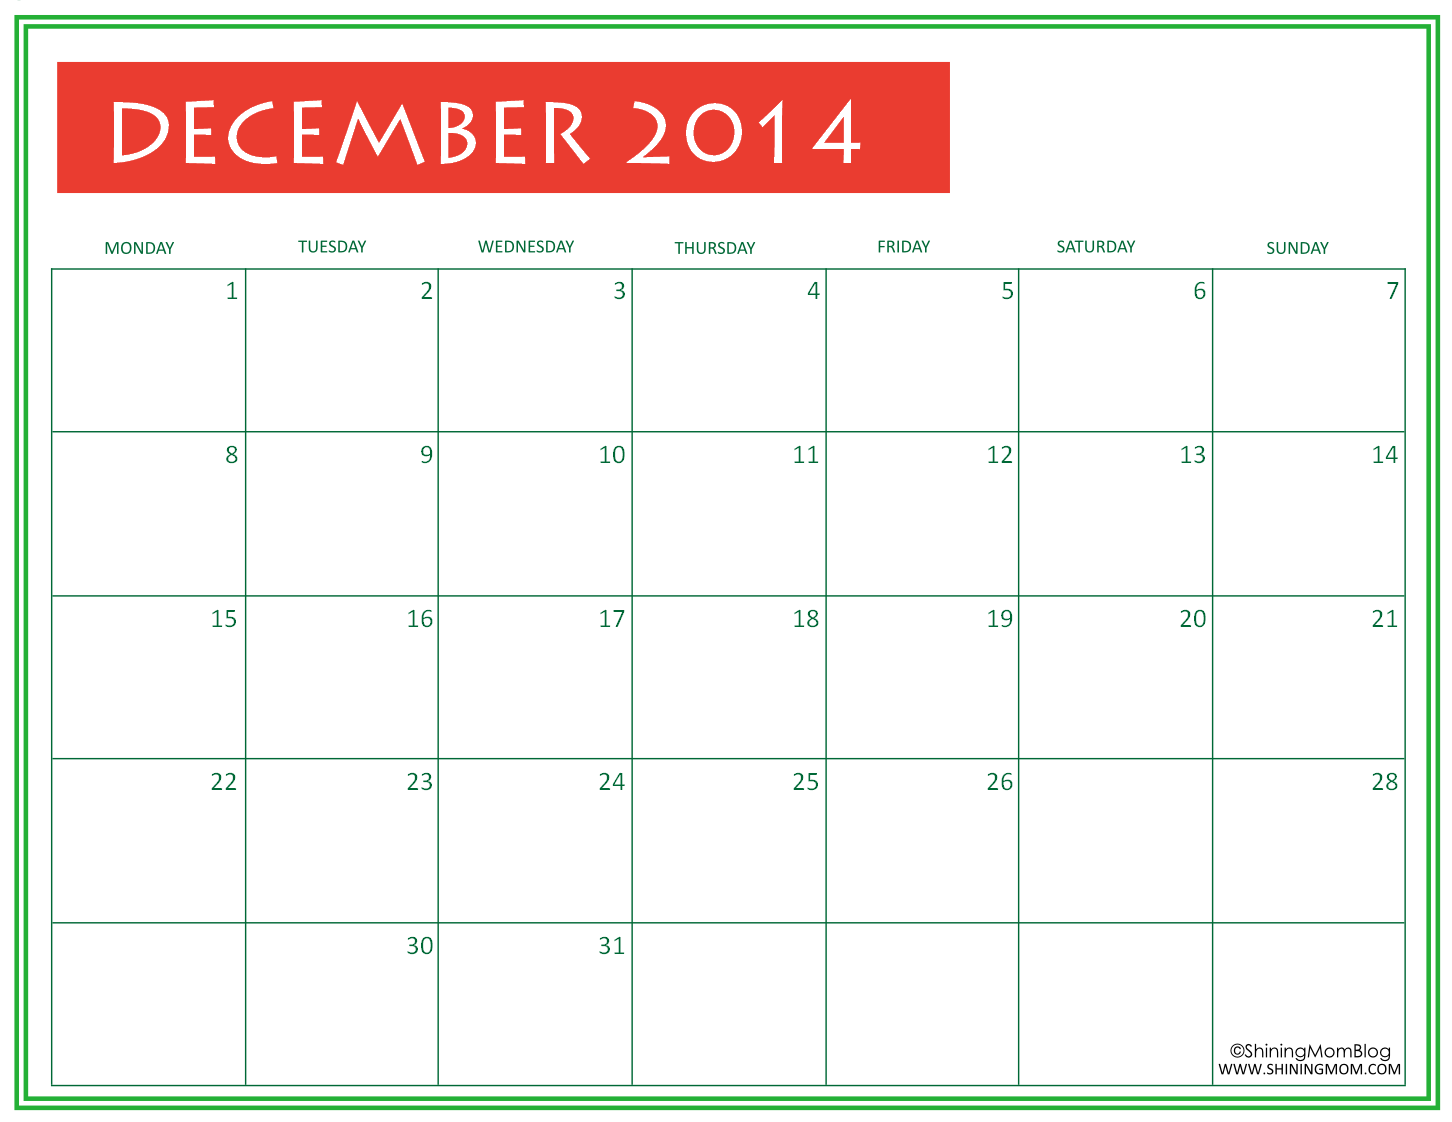 Christmas Calendar 2014 : Free printable december calendar by shining mom